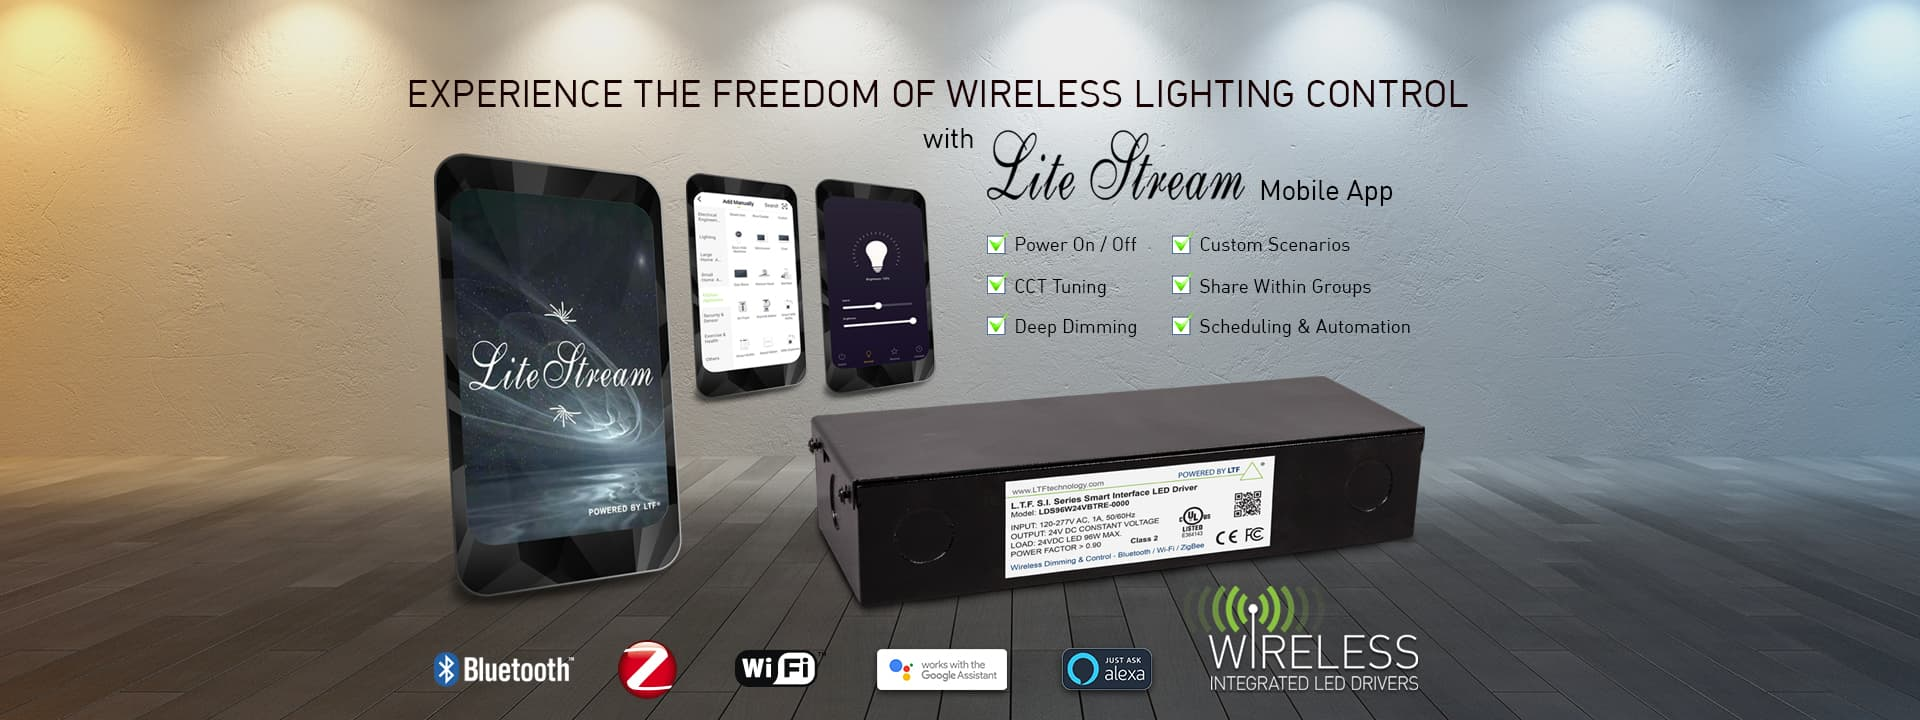 Experience the Freedom of Wireless Lighting Control with Lite Stream Mobile App